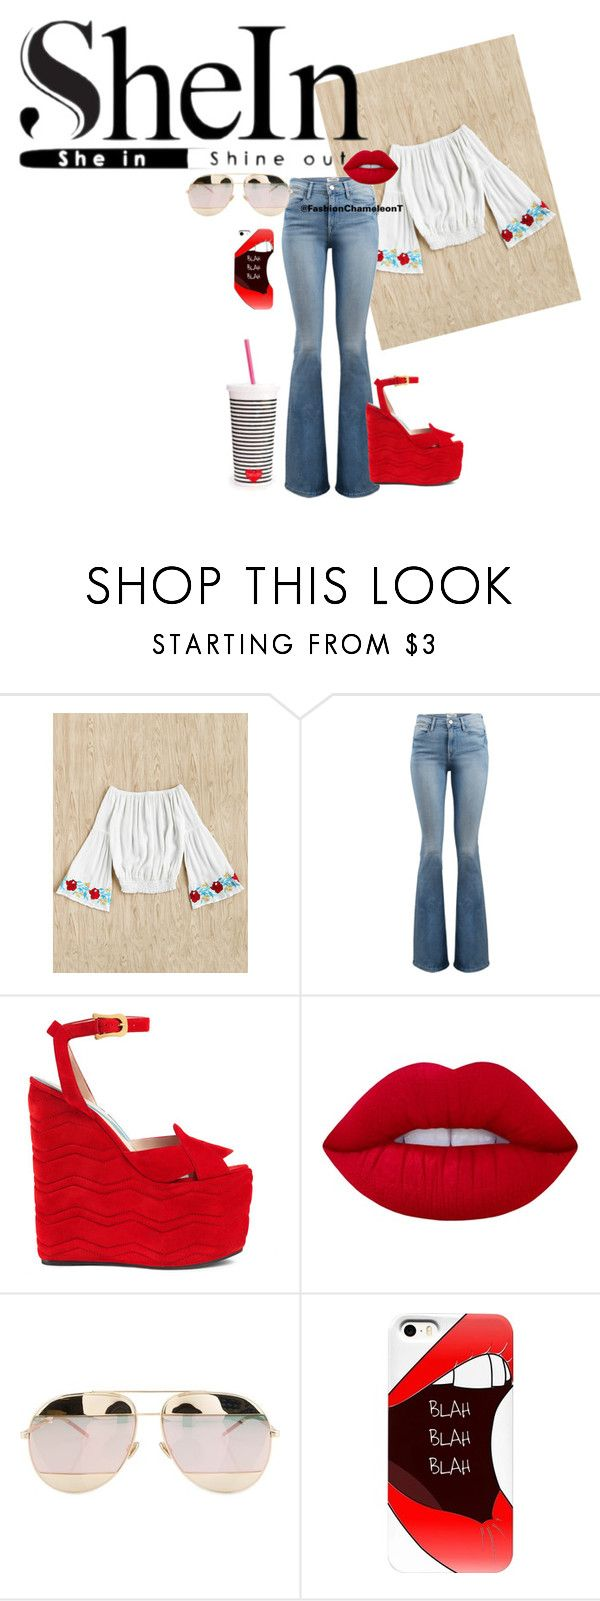 """""""SHEIN - WIN $30 COUPON CODE"""" by fashionchameleont ❤ liked on Polyvore featuring Frame, Gucci, Lime Crime, Christian Dior and ban.do"""